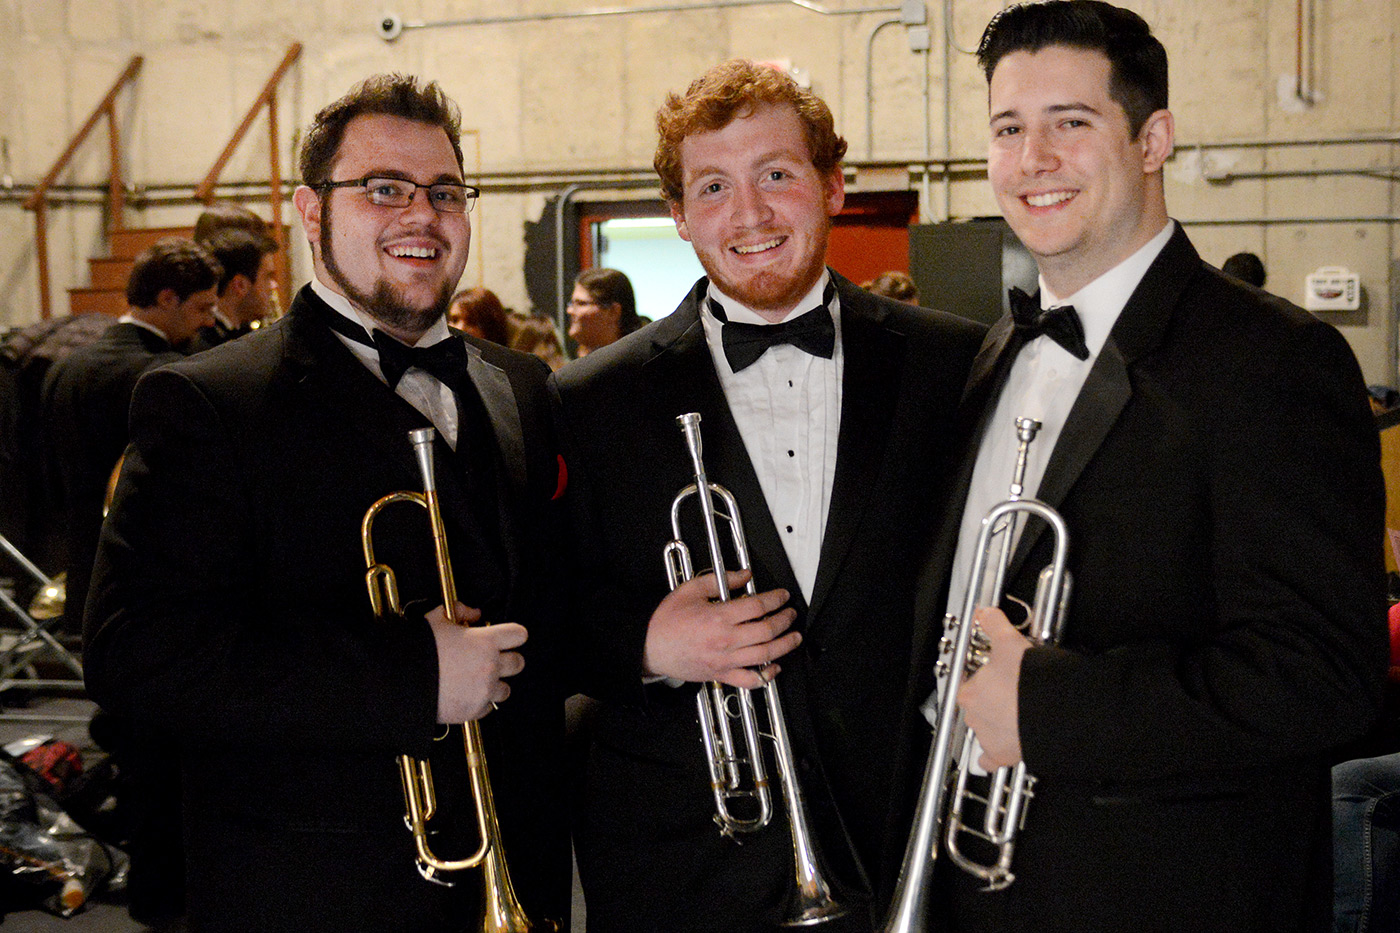 Three musicians at the University Orchestra's